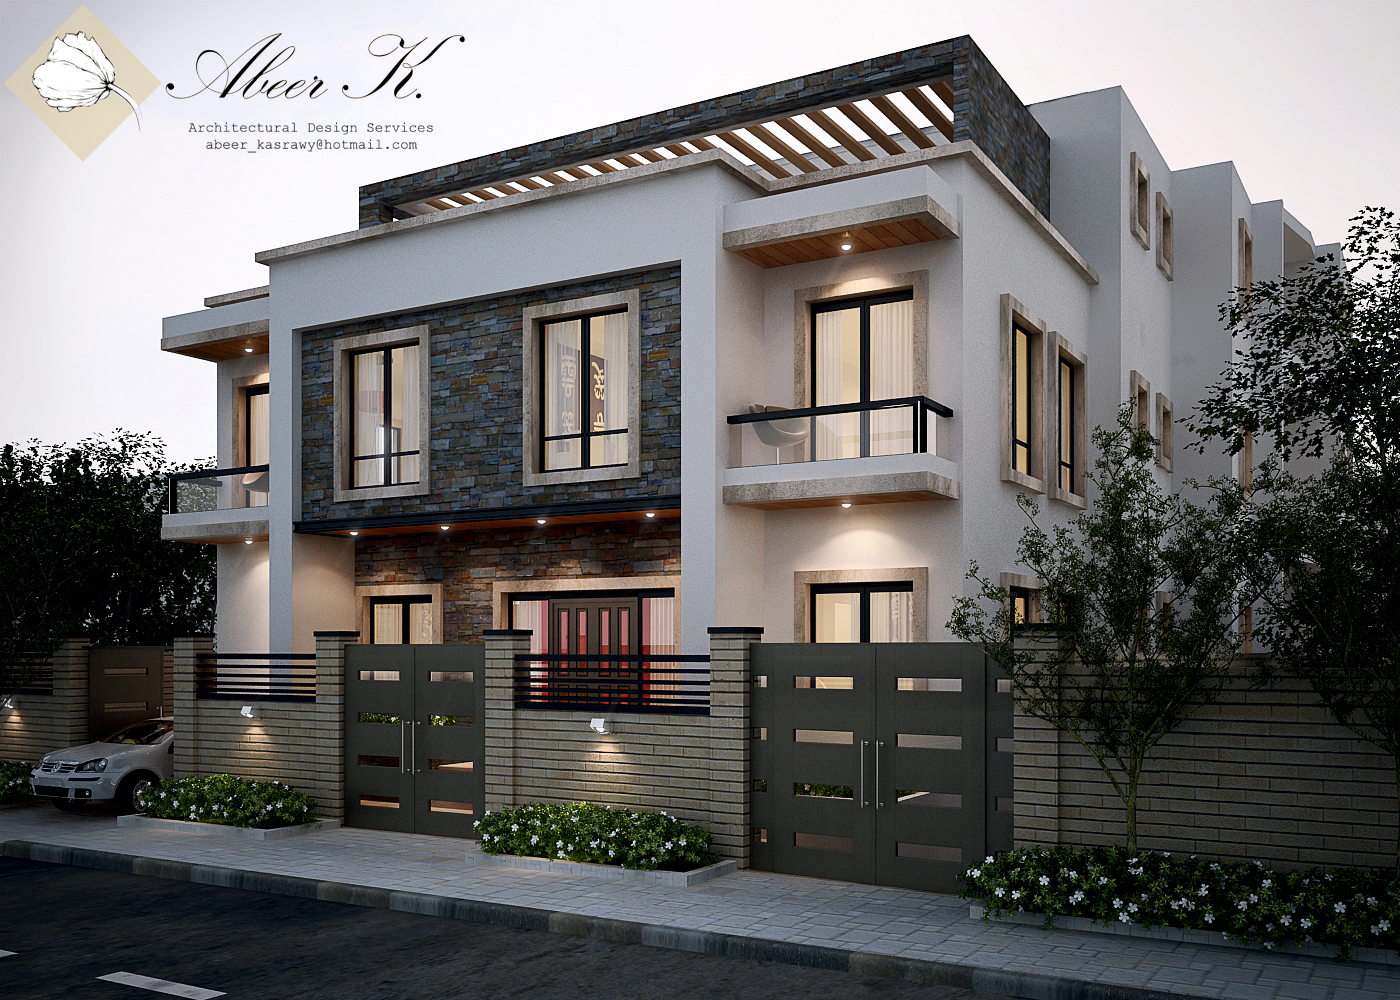 New cairo\'s villa - exterior by kasrawy on DeviantArt